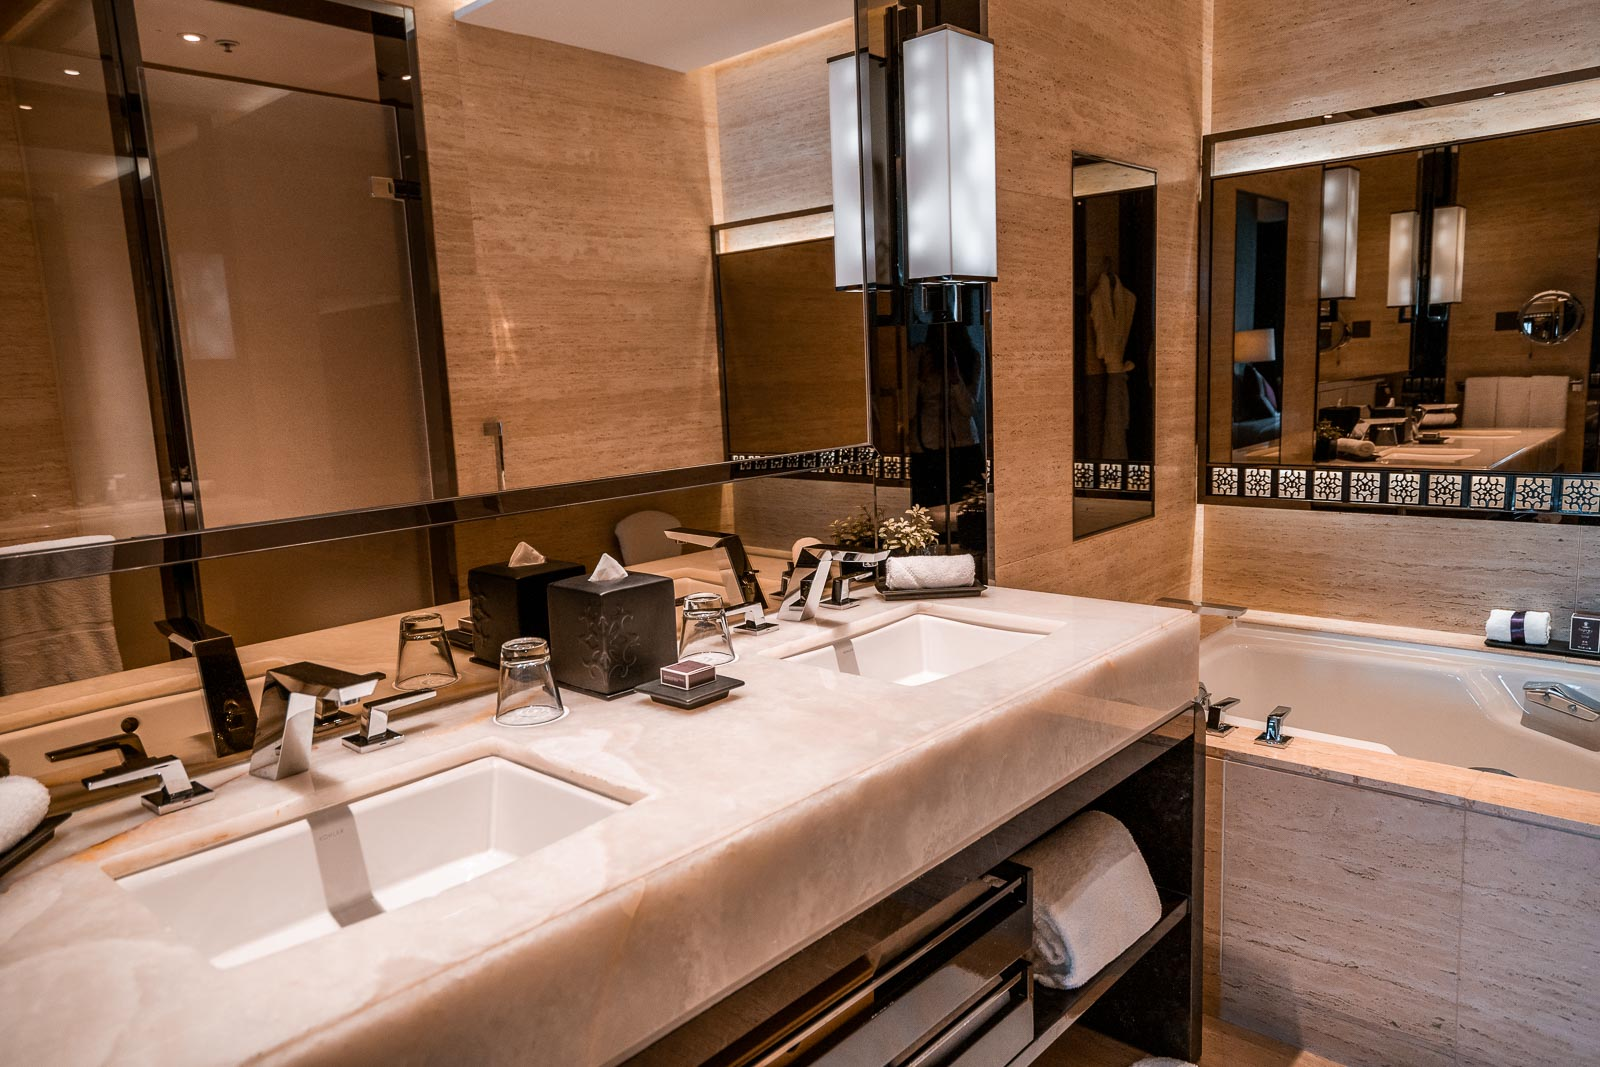 Bathroom in the Ritz Carlton Hong Kong